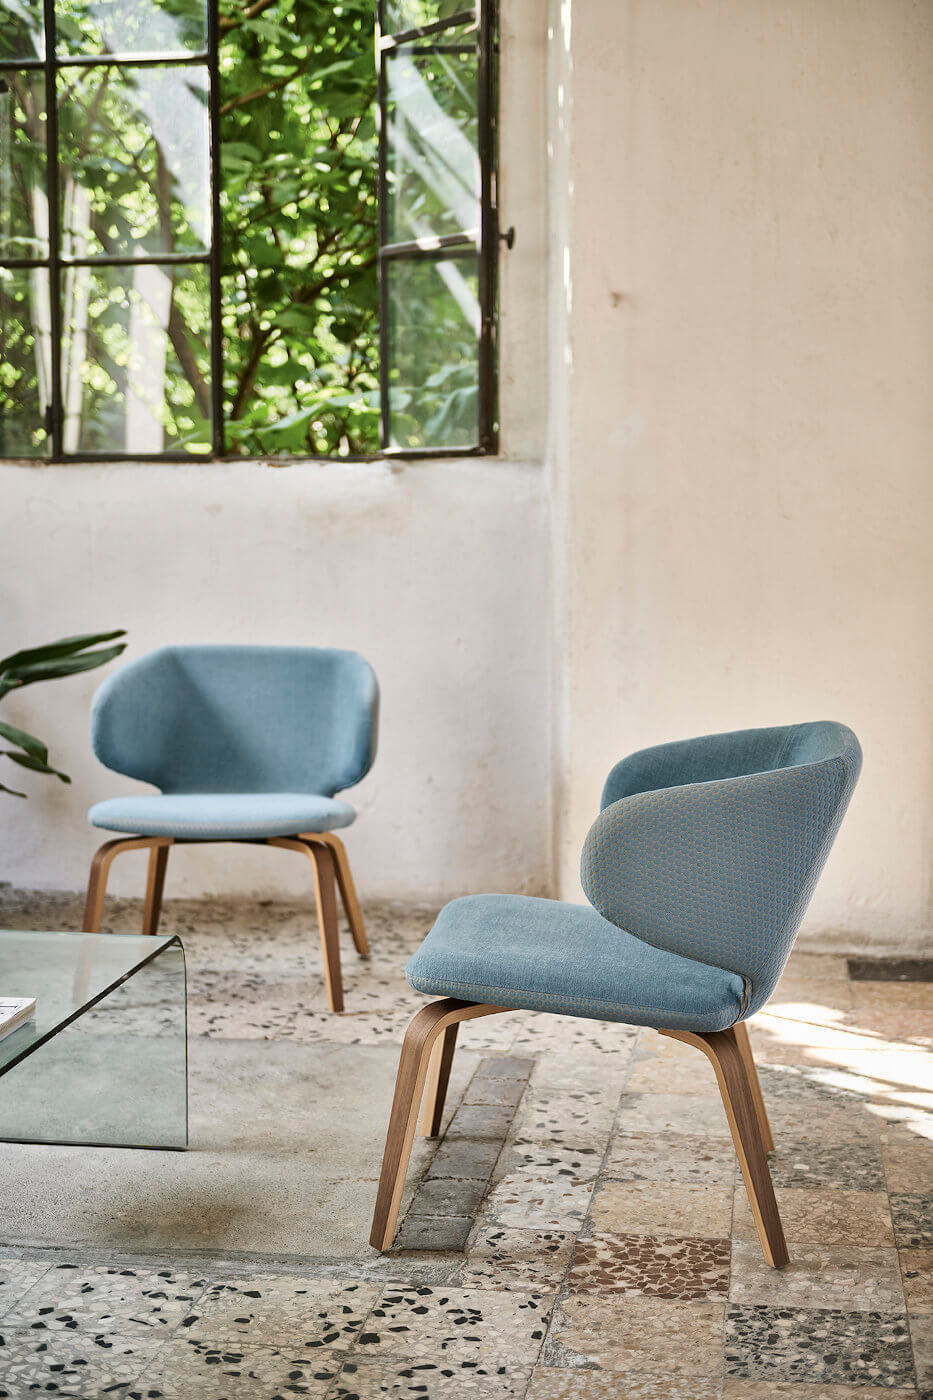 Waiting chair wrap with legs in flamed walnut and seat covered in light blue fabric